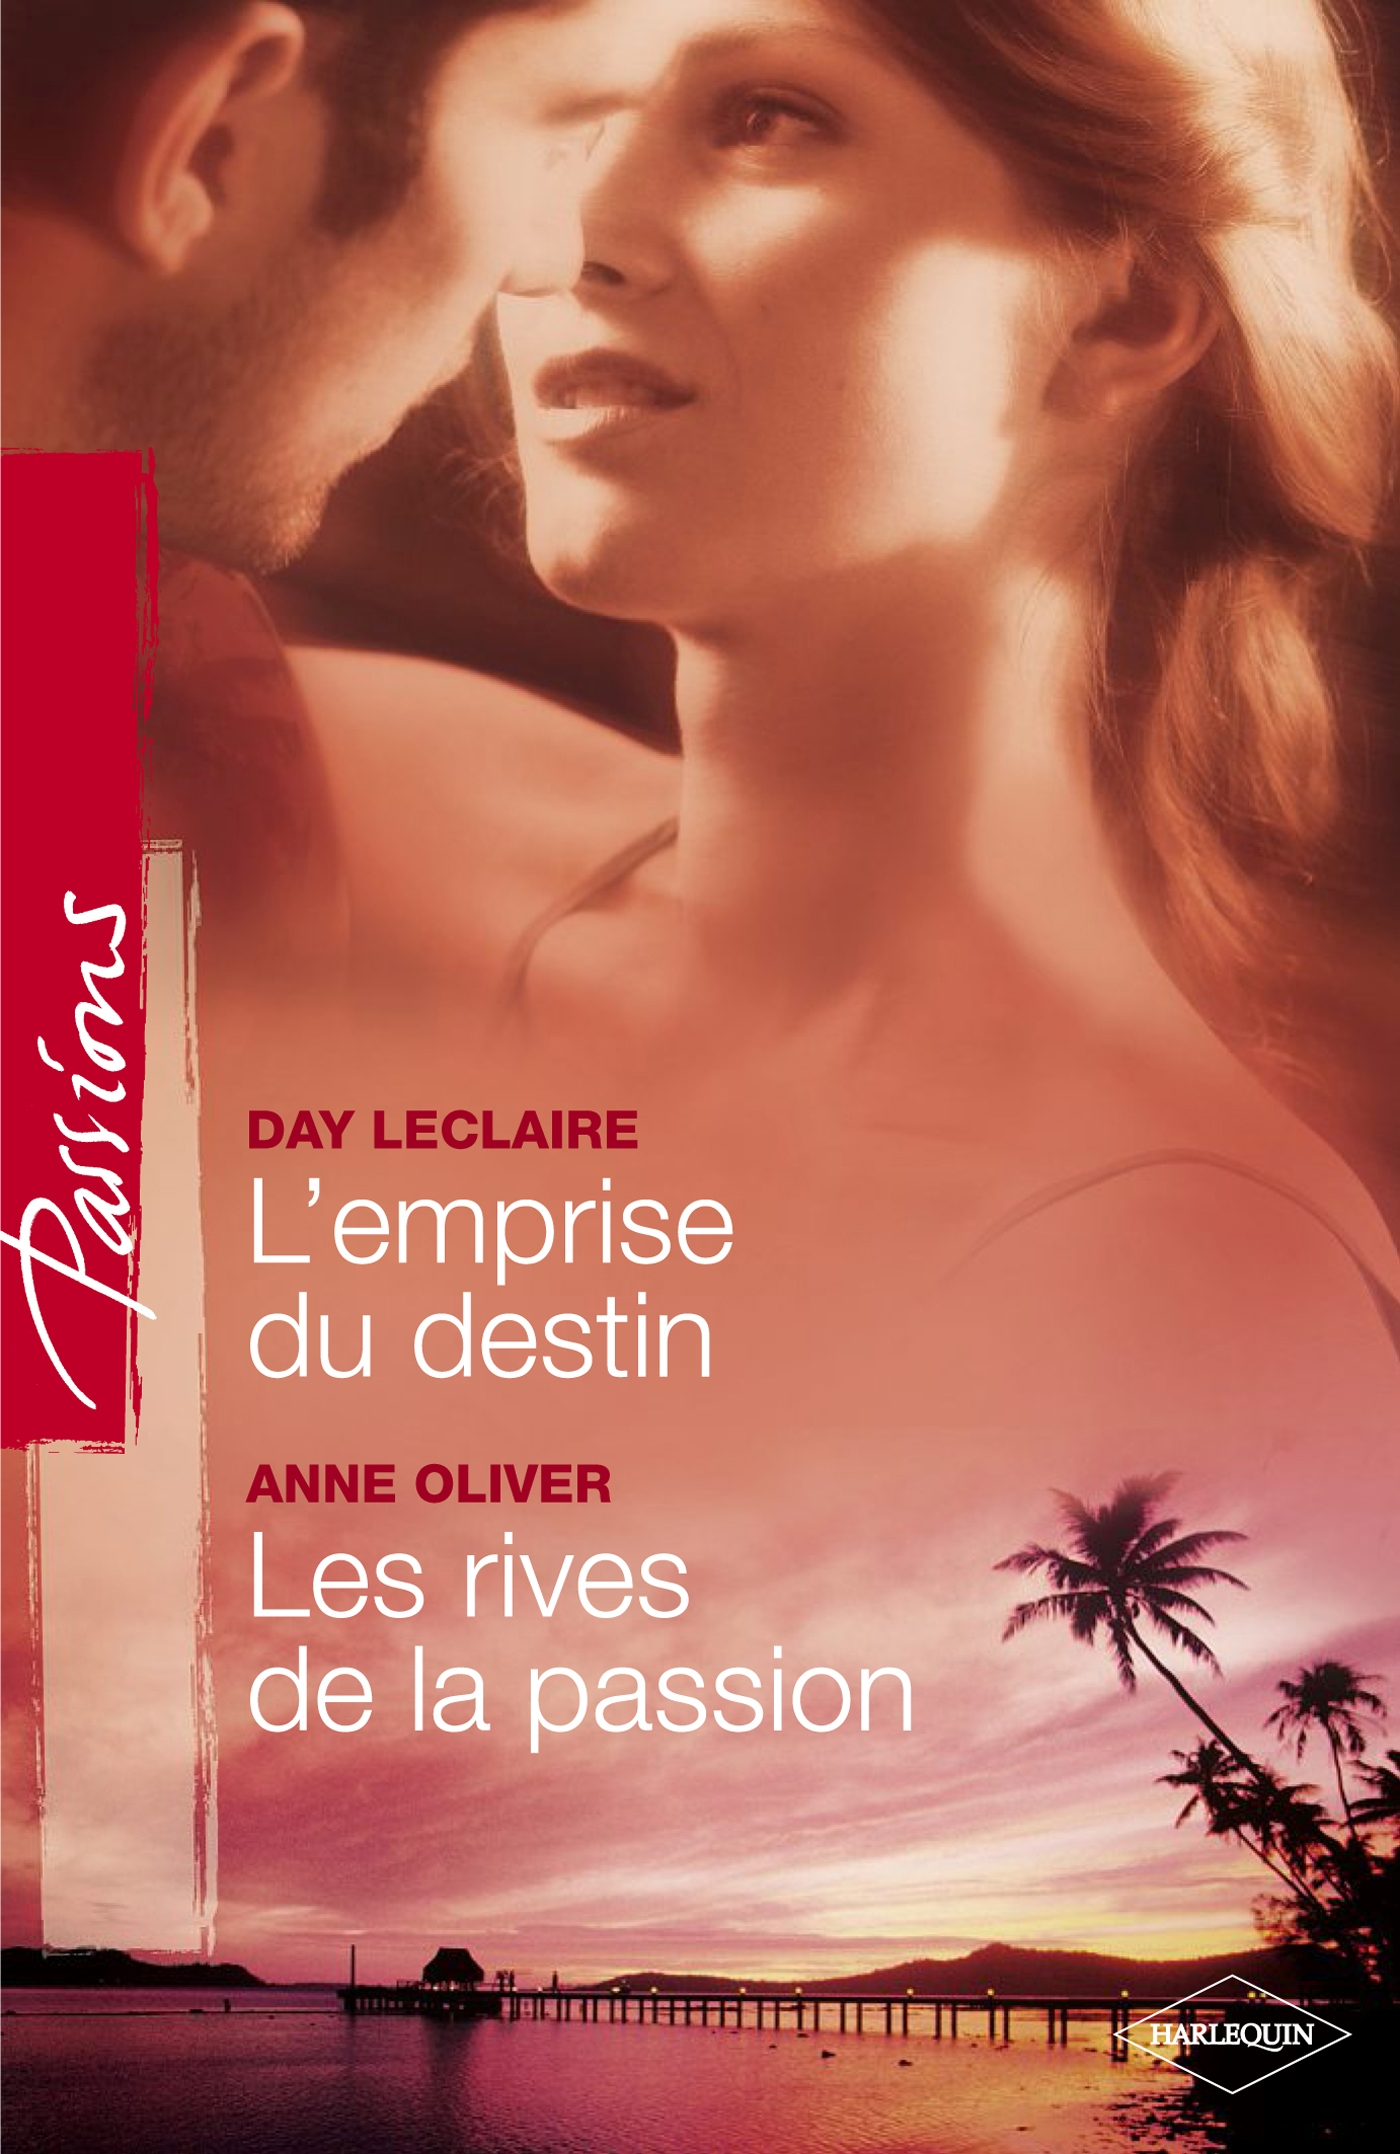 L'emprise du destin - Les rives de la passion (Harlequin Passions)